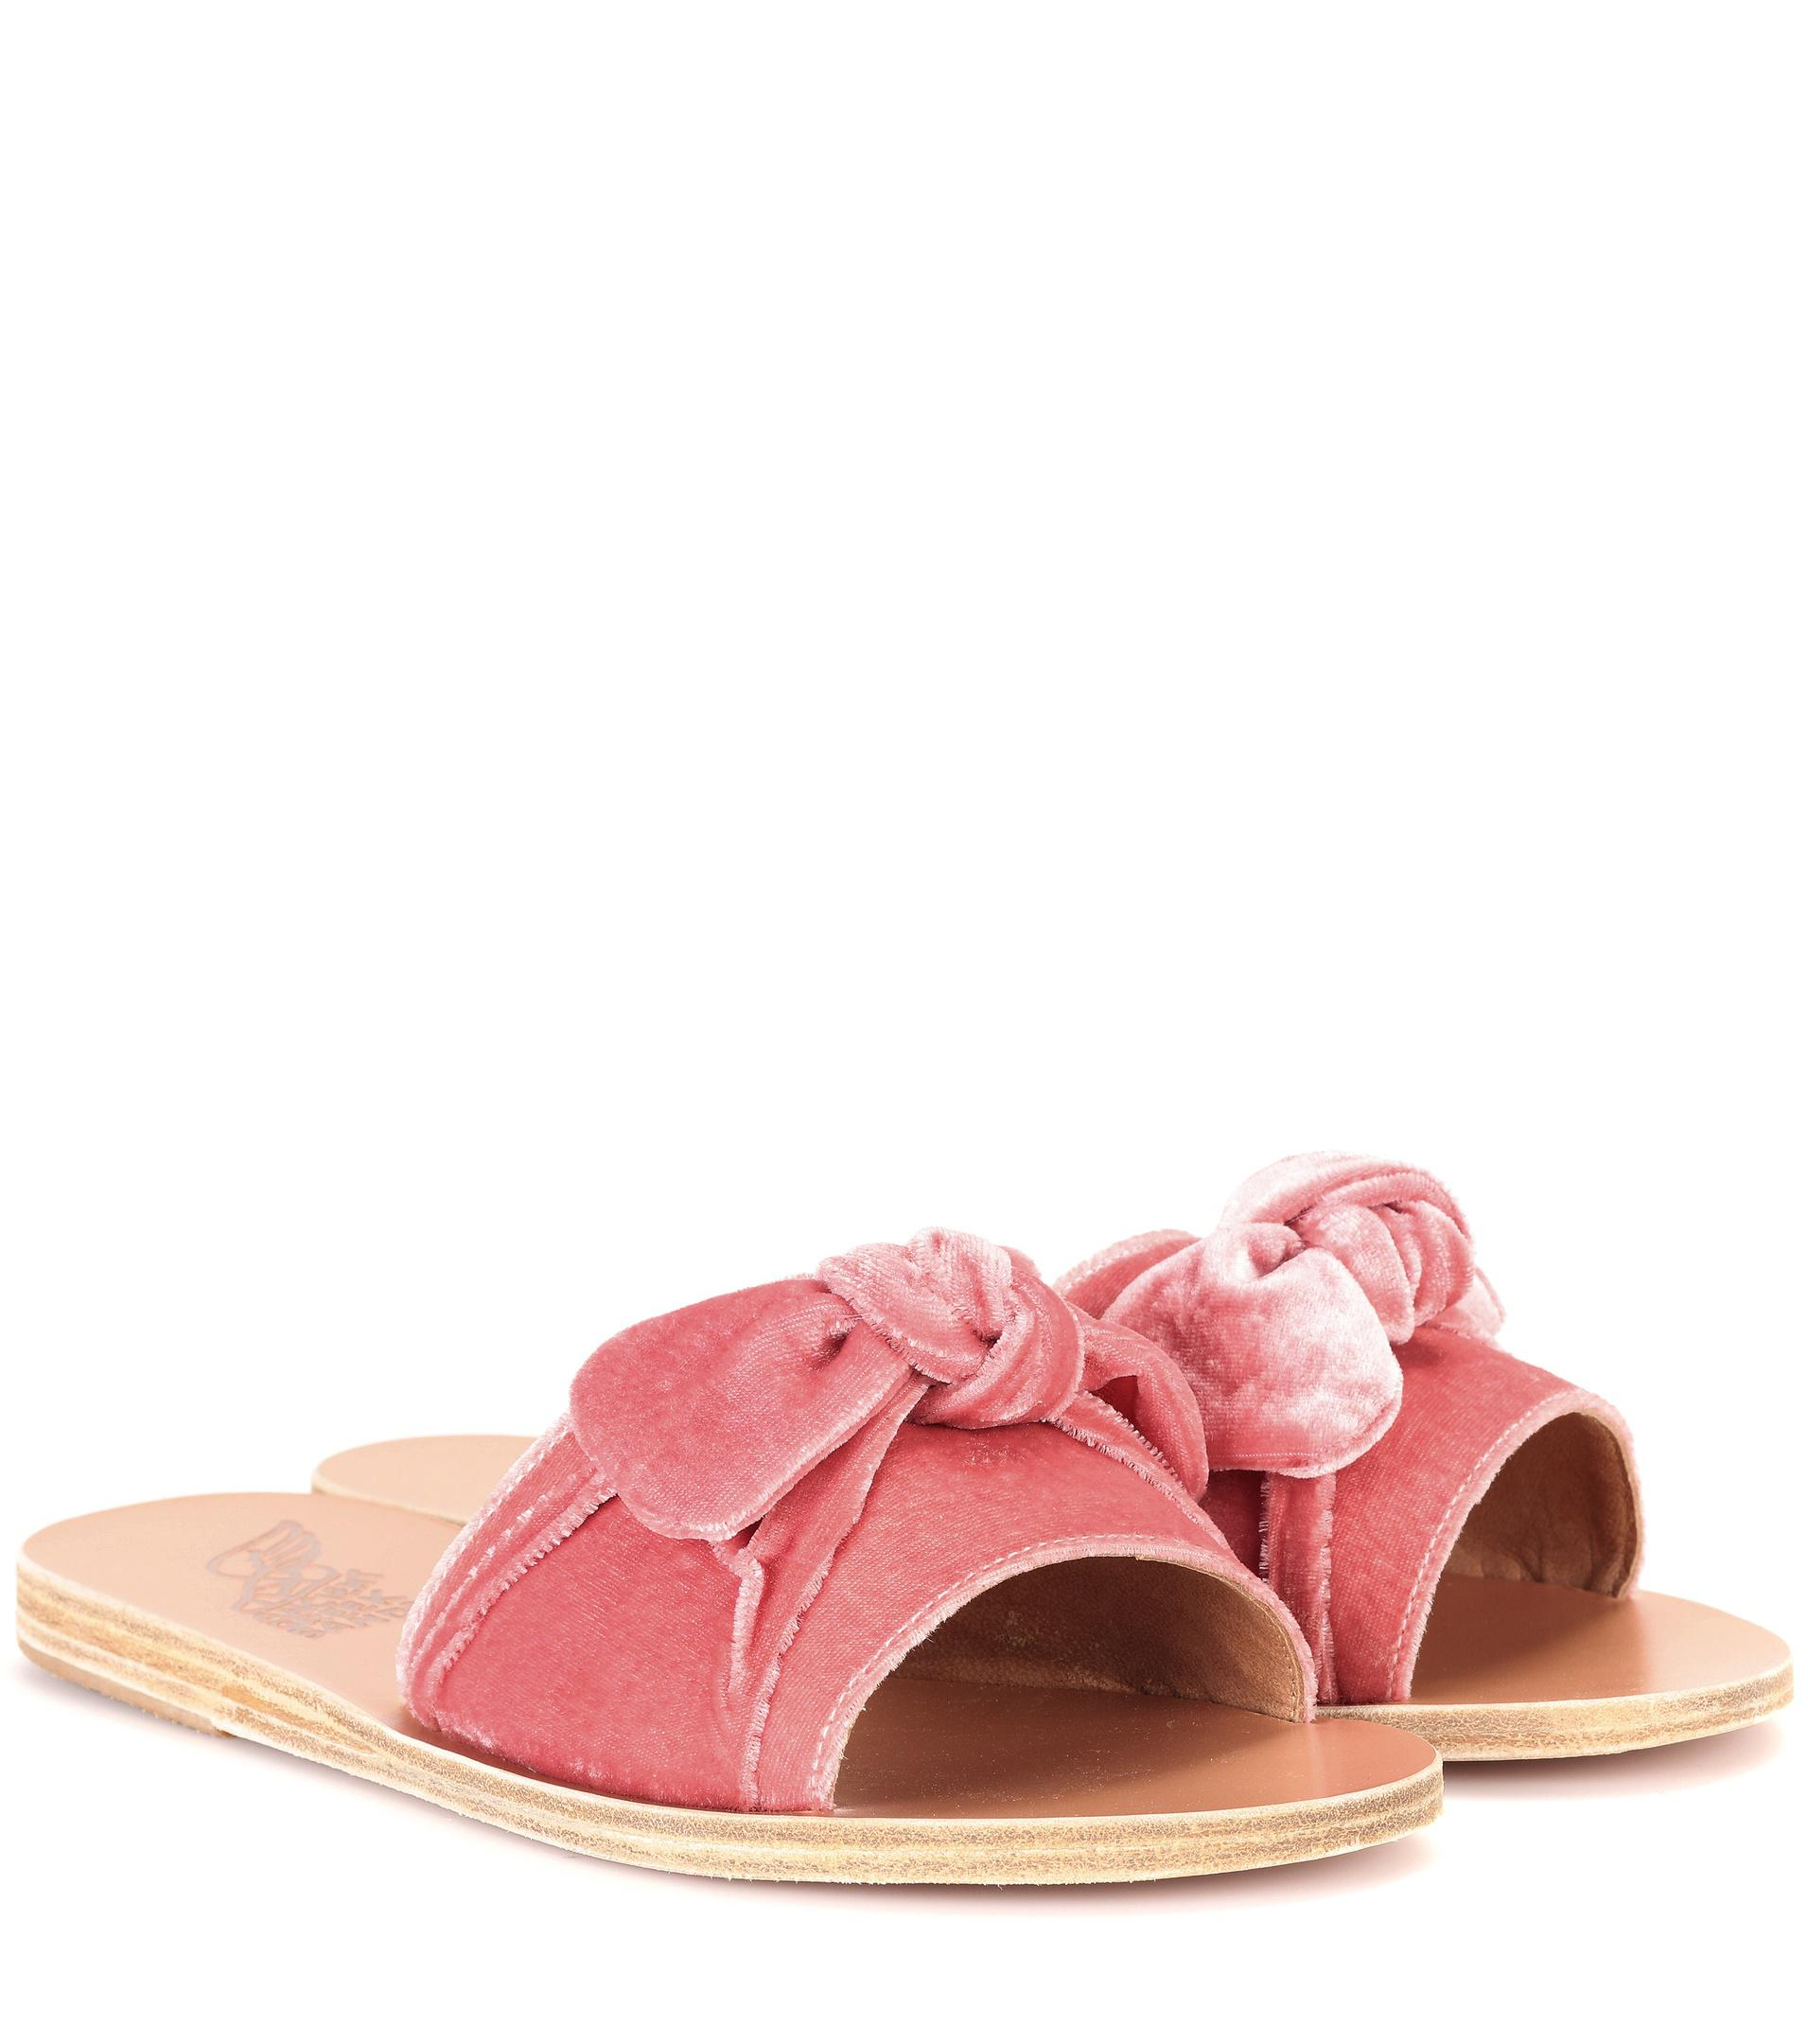 Valentino Pink Denim Taygete Sandals